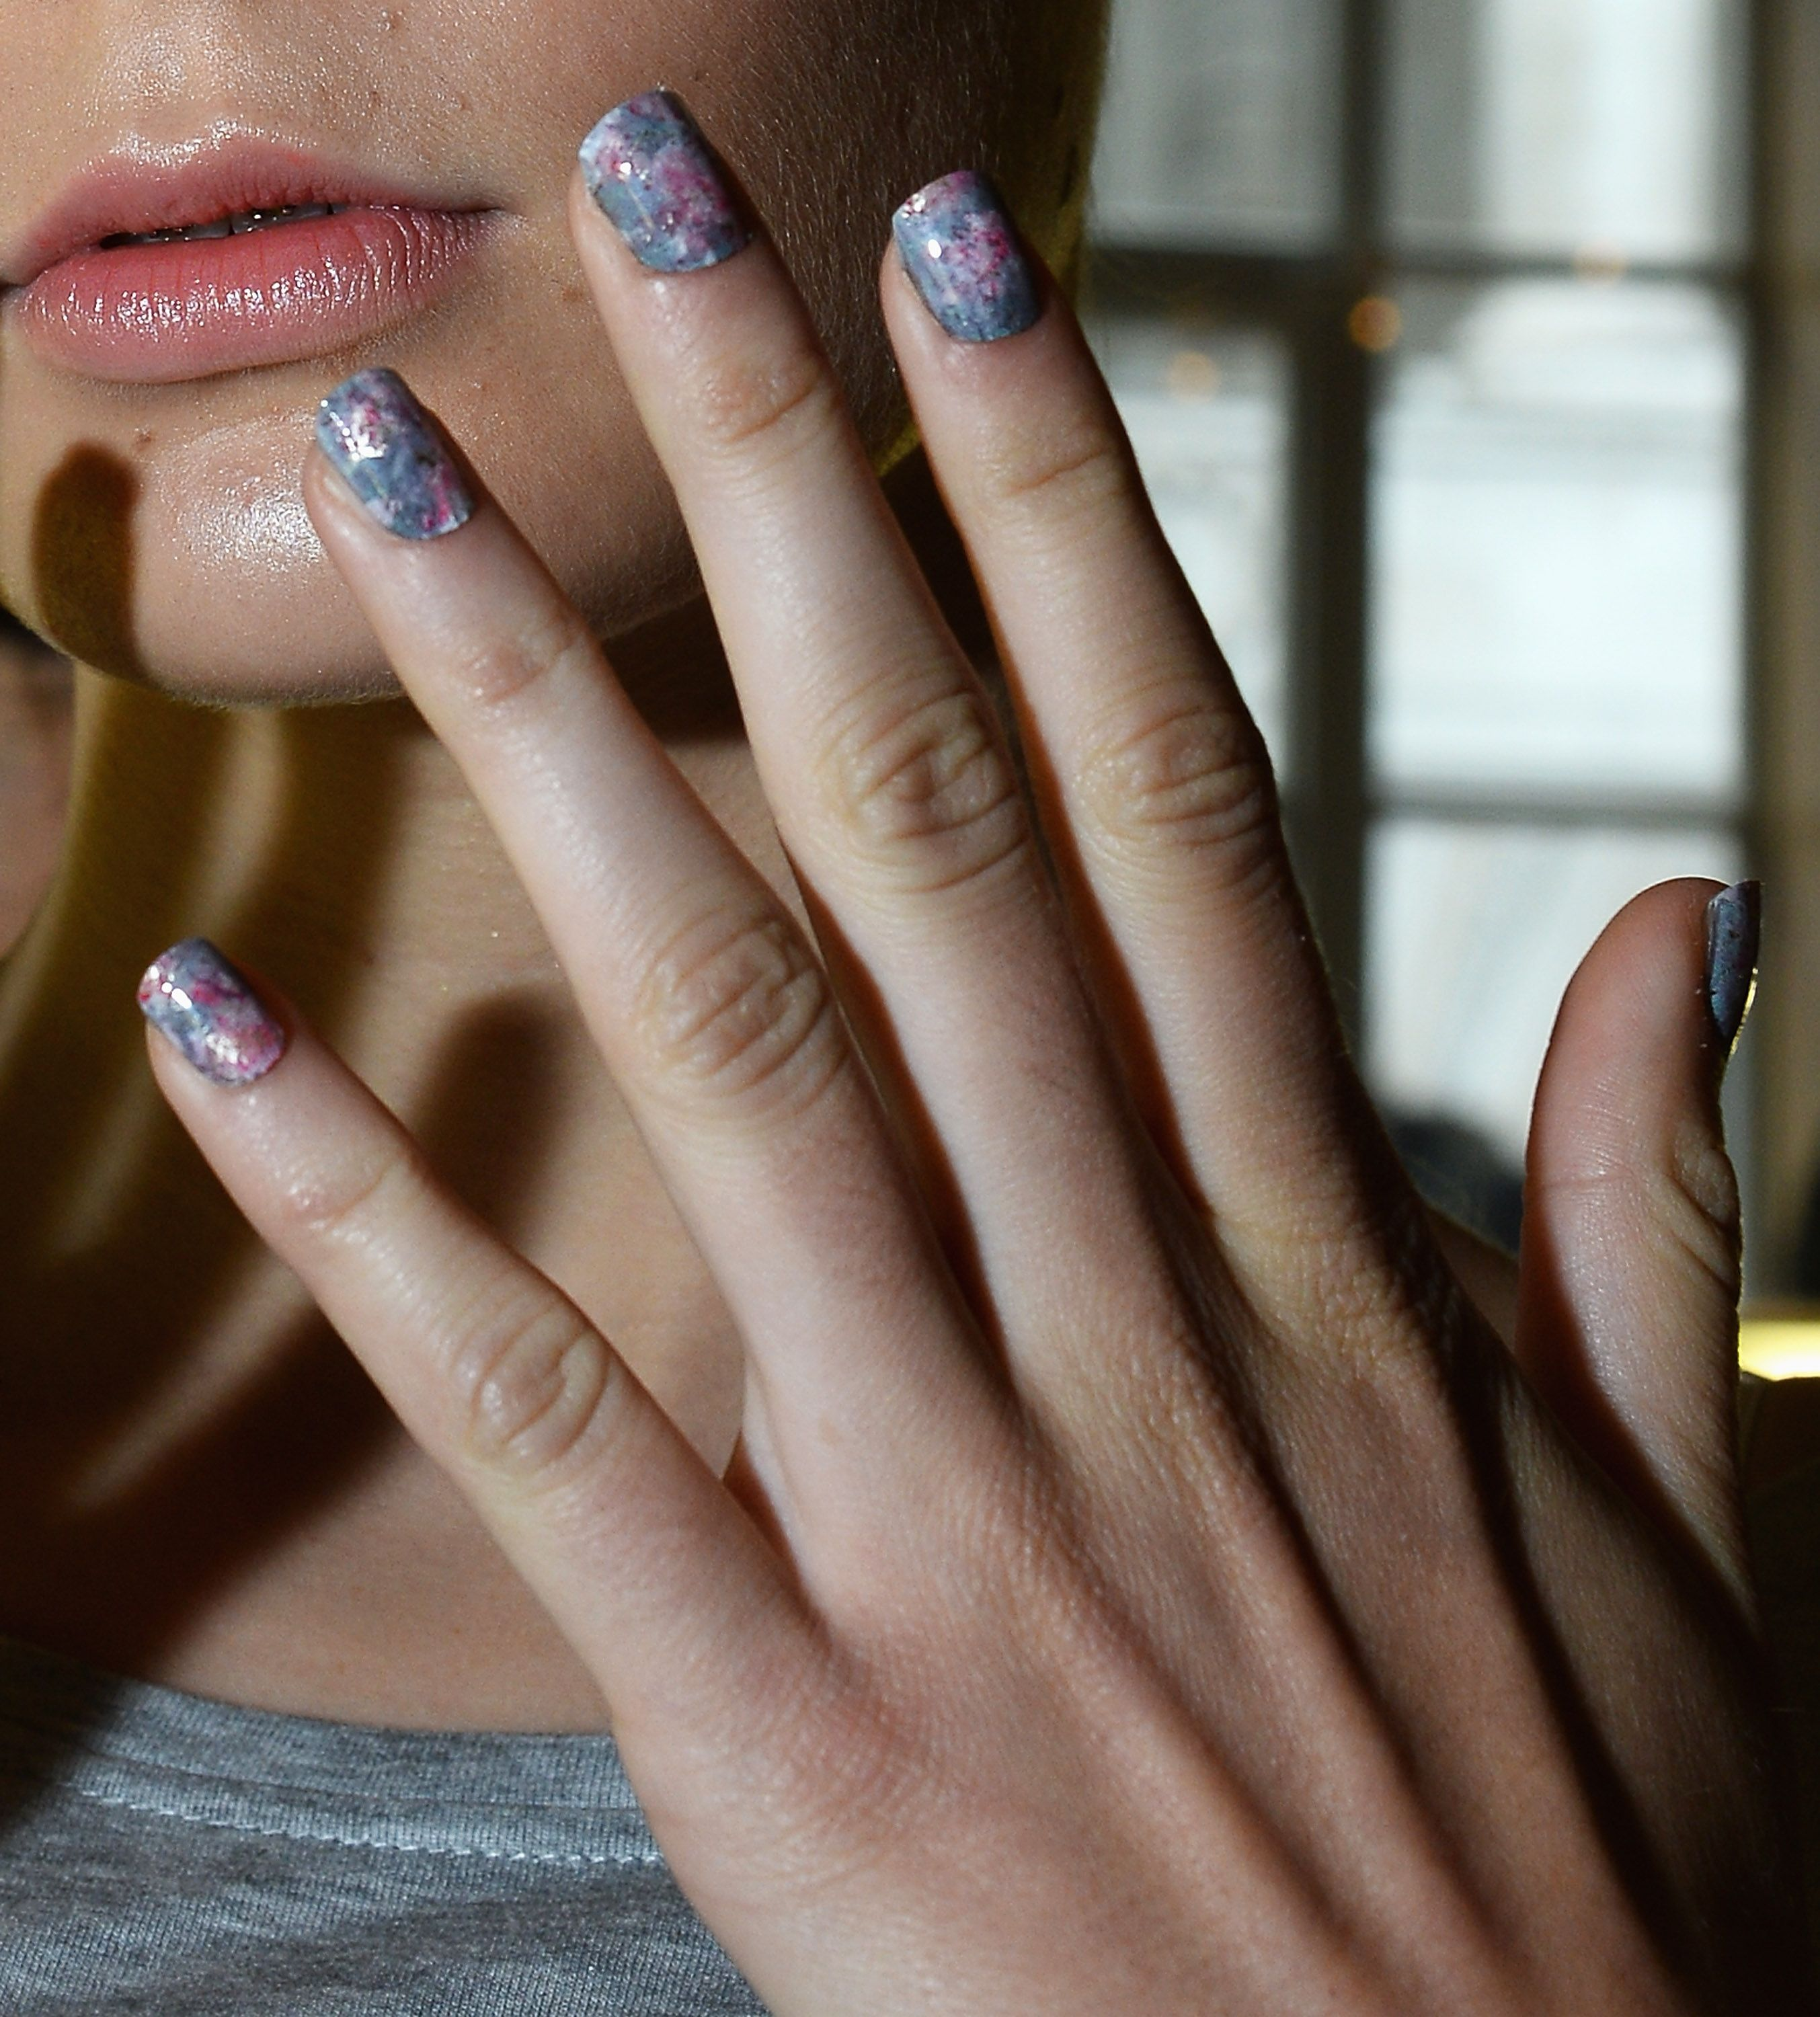 17. These abstract floral nails from Michael van der Ham ...